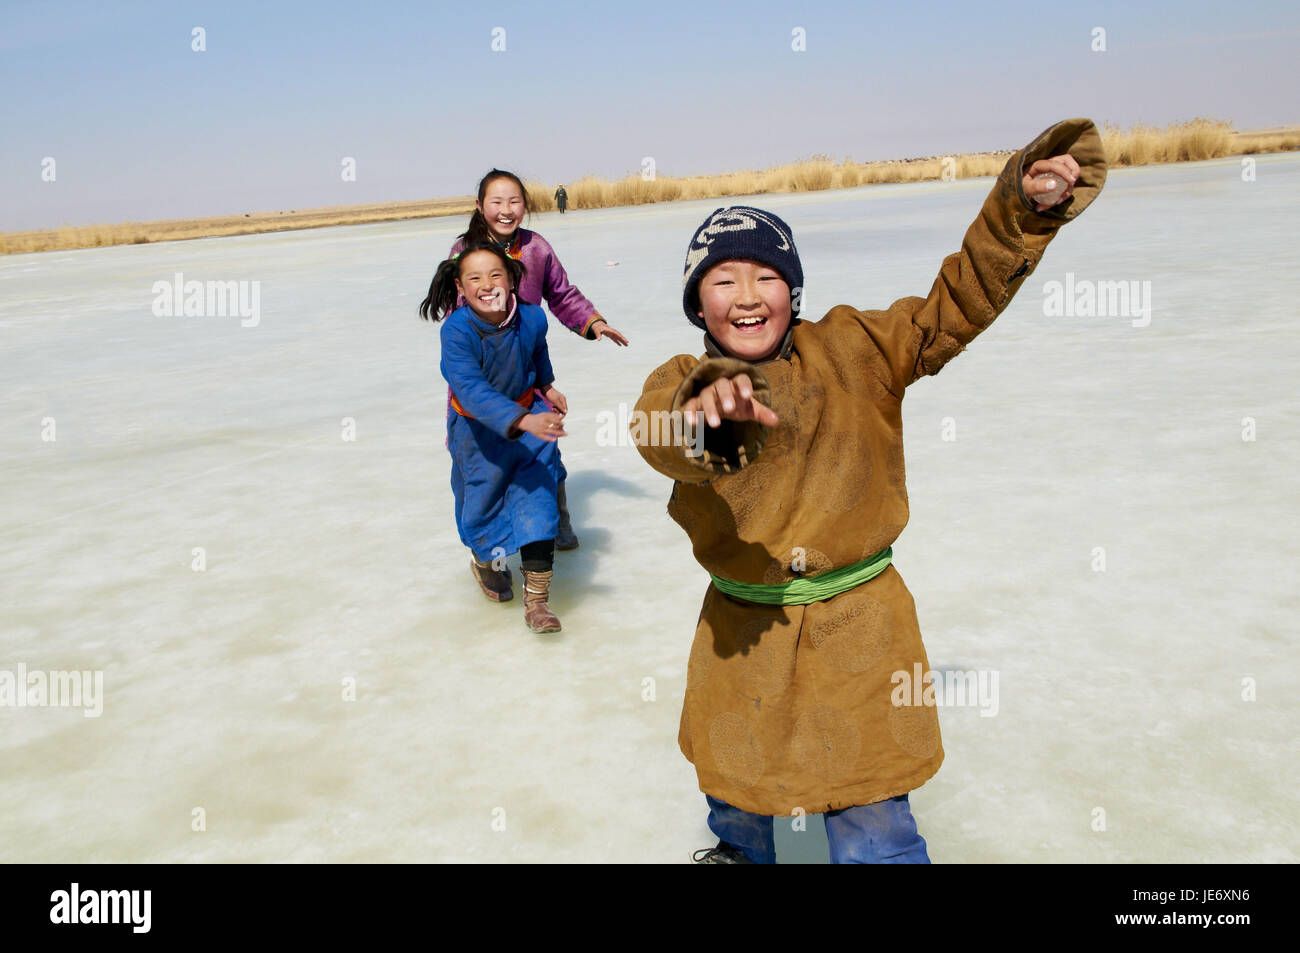 Mongolia, Khovd province, winter, children play on icebound lake, - Stock Image